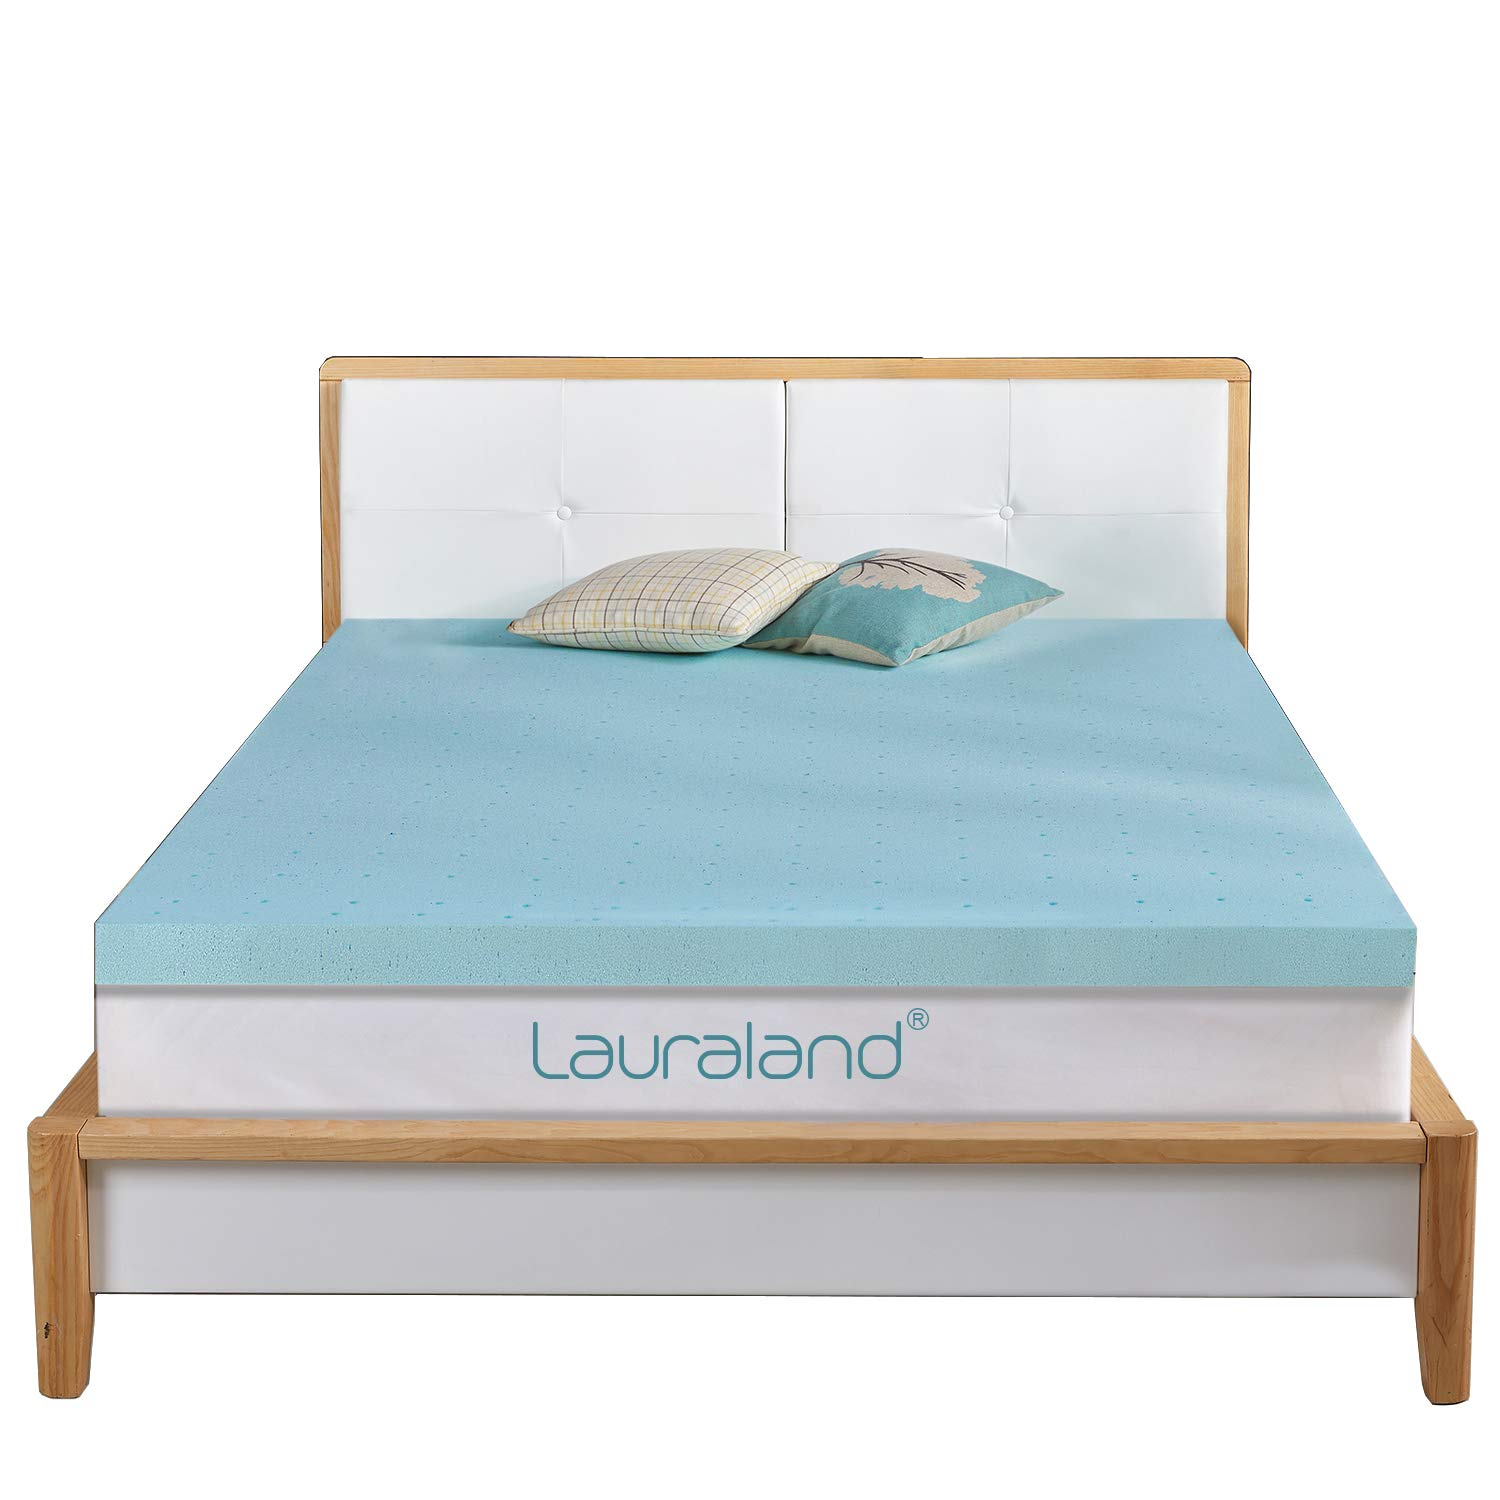 Lauraland Mattress Topper, Gel-Infused Memory Foam Mattress Topper with Cooling Technology, 2 inch (2in Full)